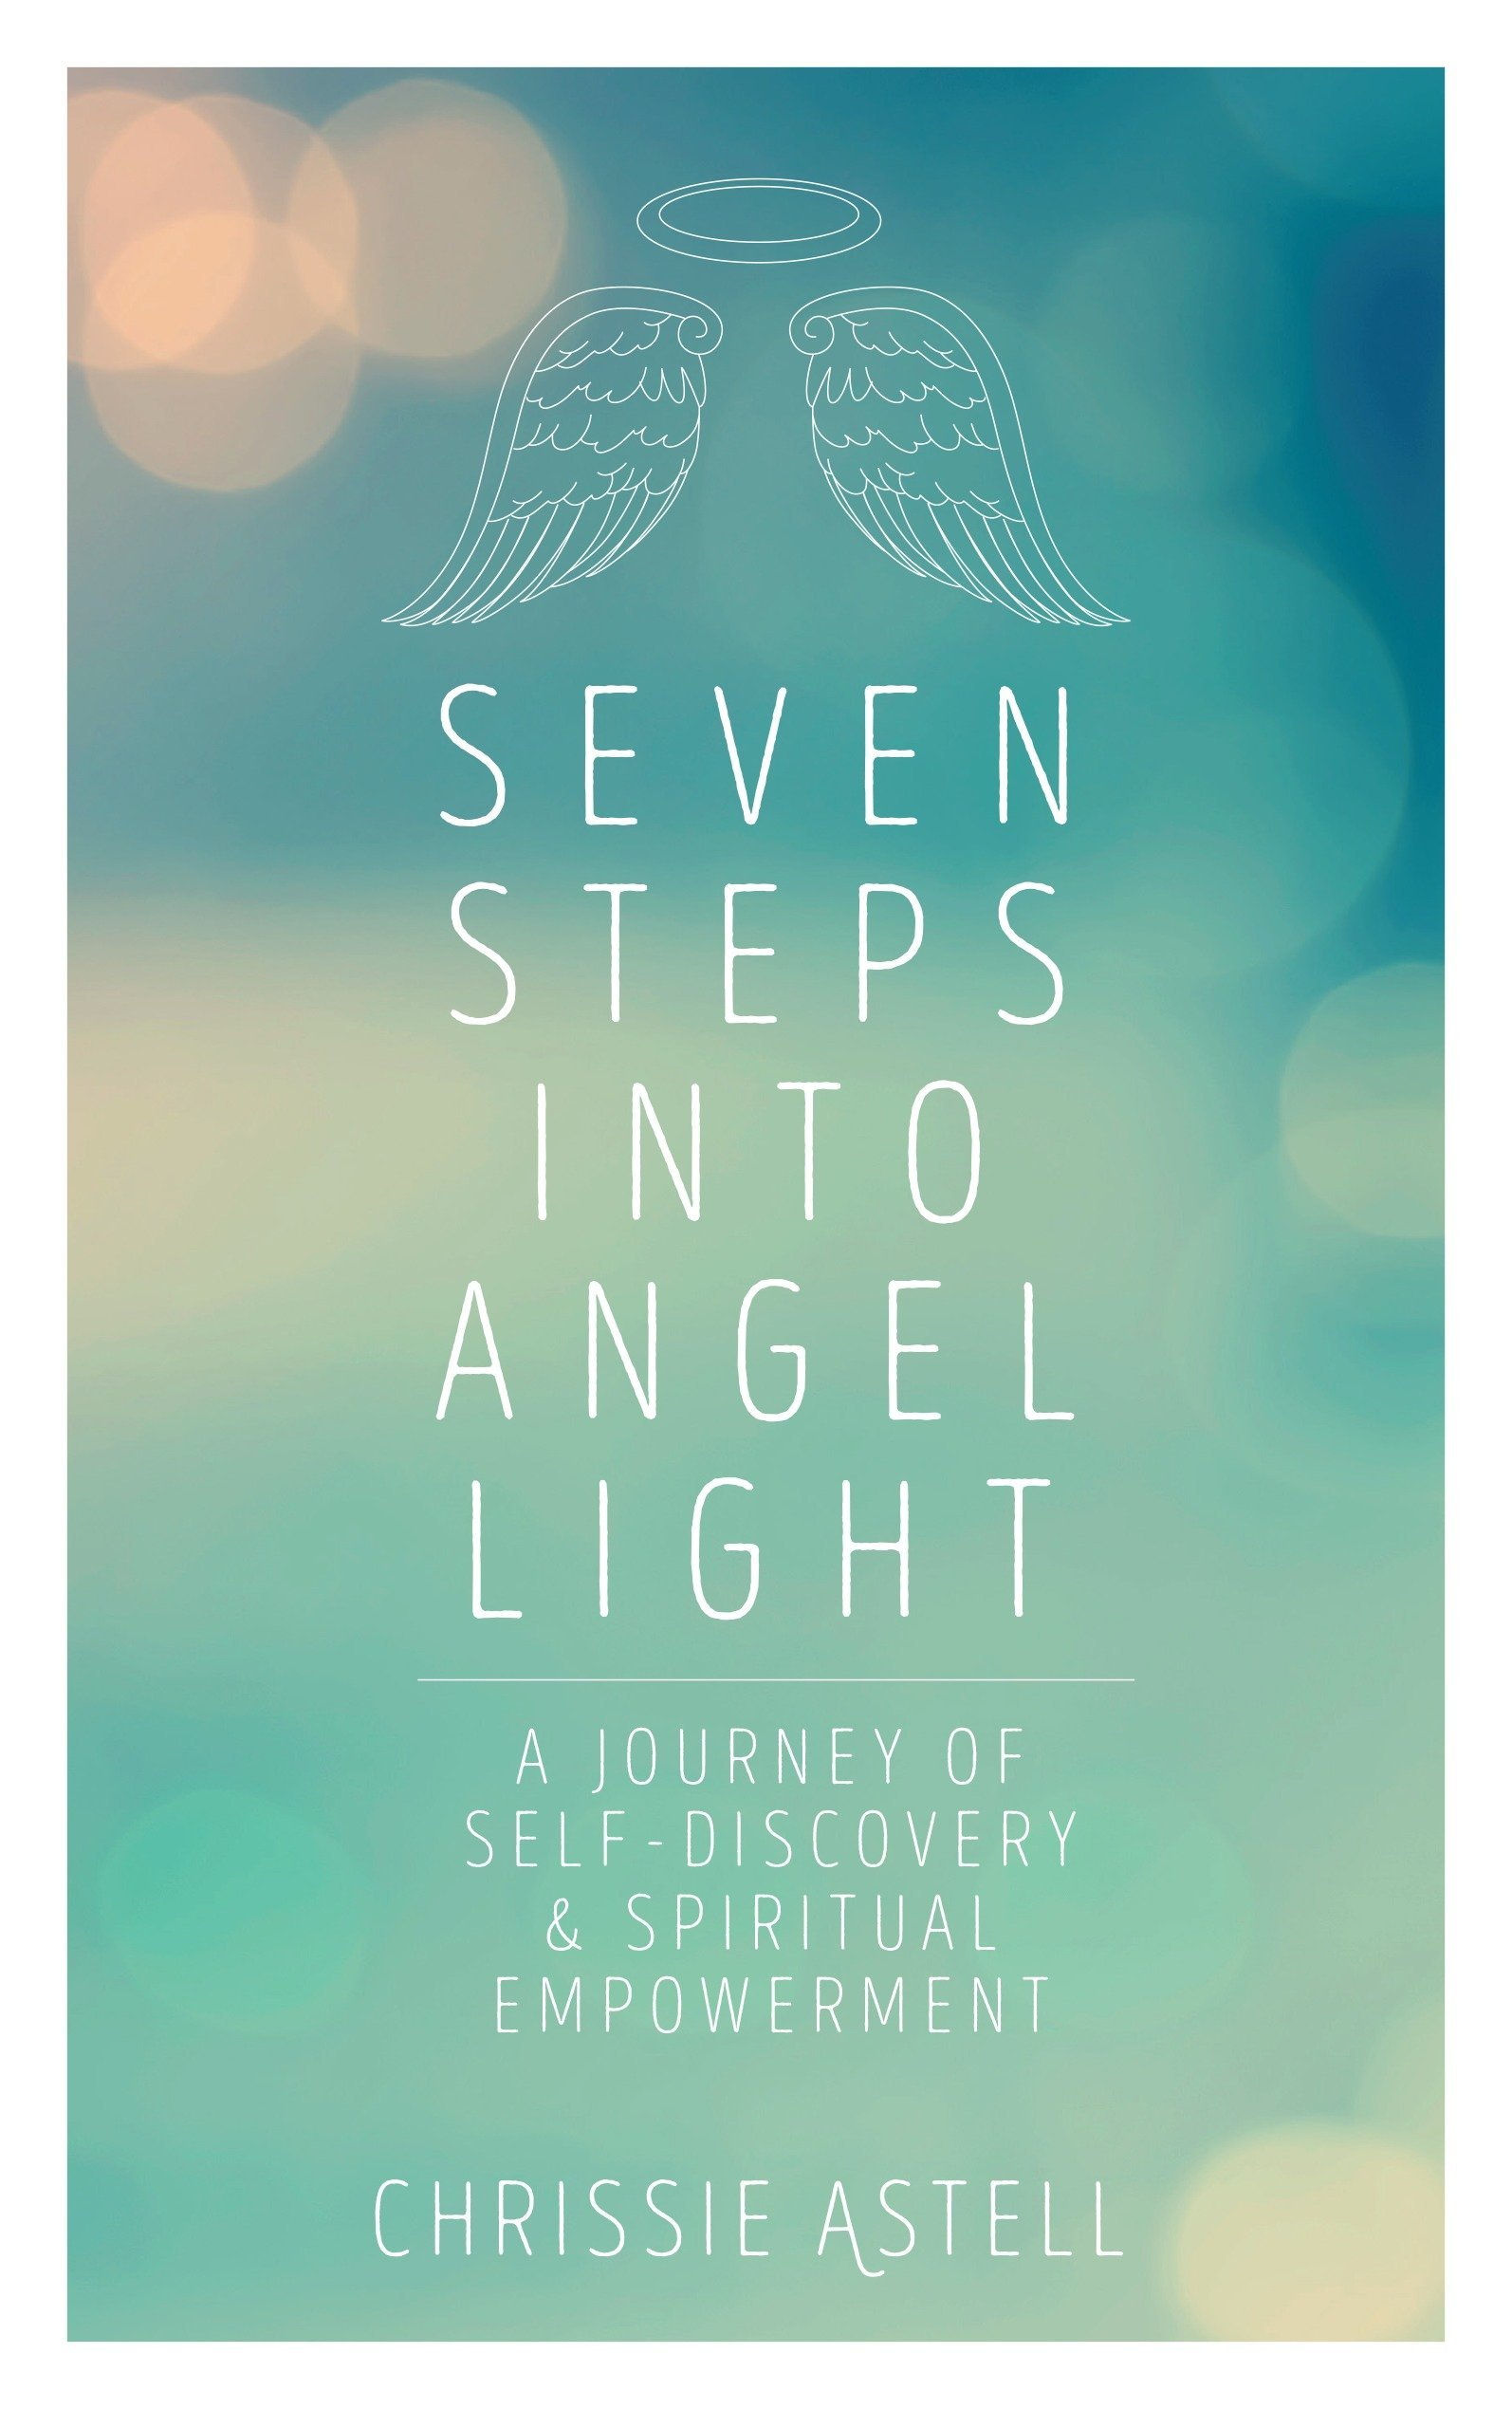 Download Seven Steps into Angel Light: A Journey of Self-Discovery and Spiritual Empowerment PDF